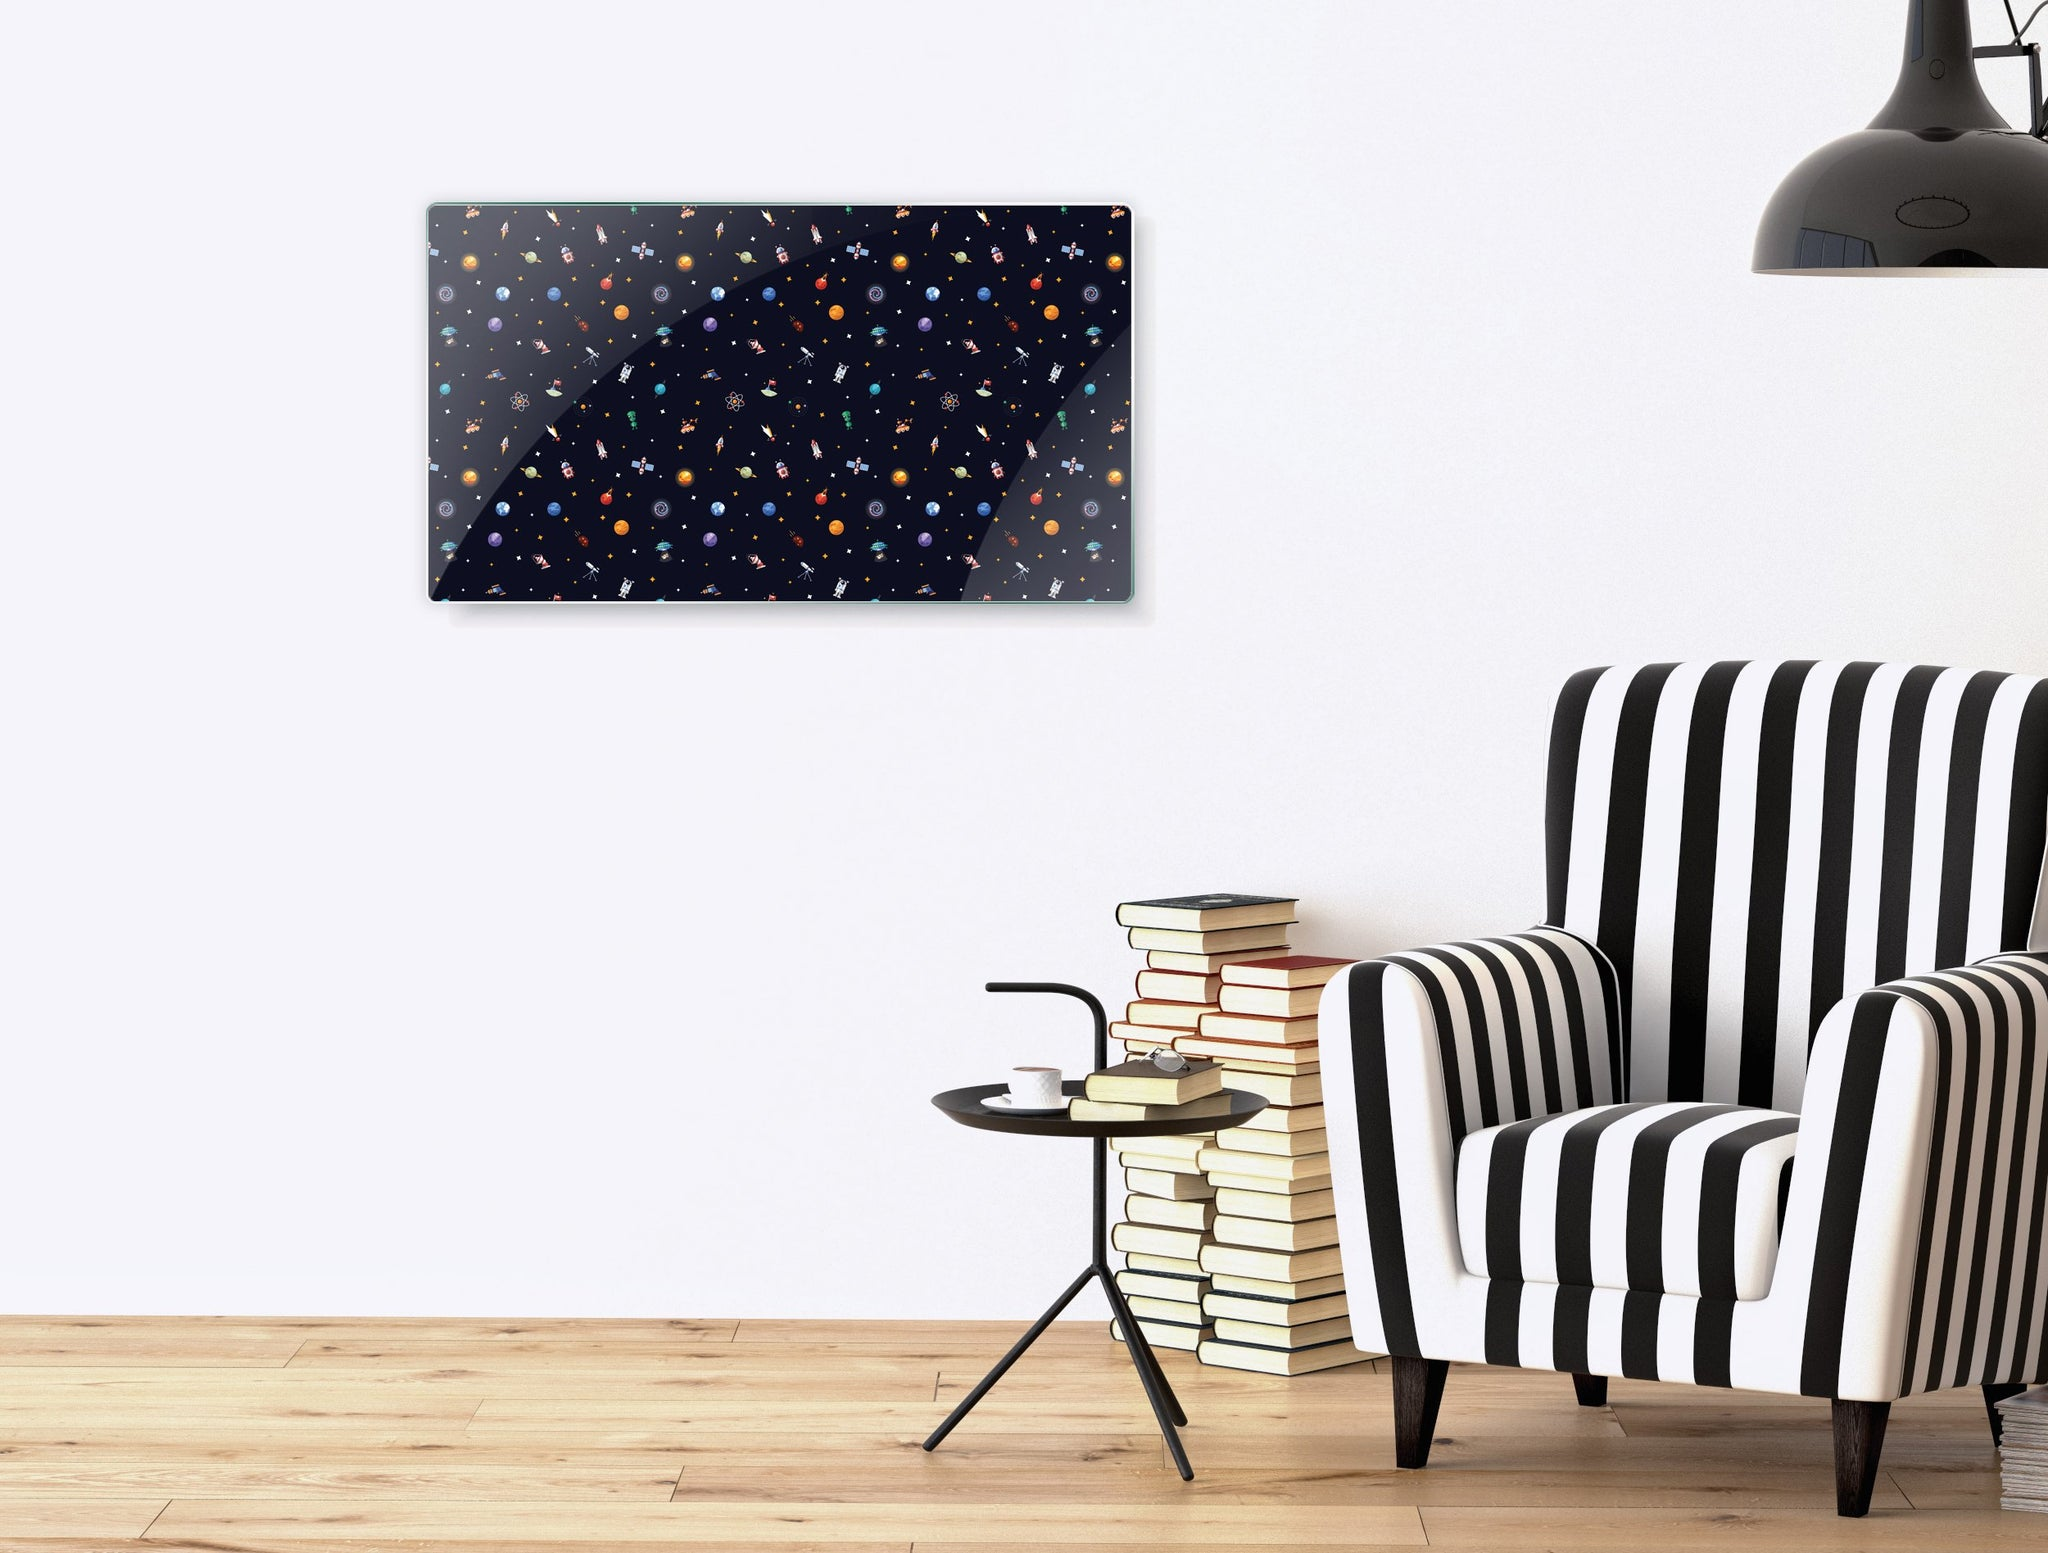 Art wall pictures space crowd - AP065 - Art Life Decor